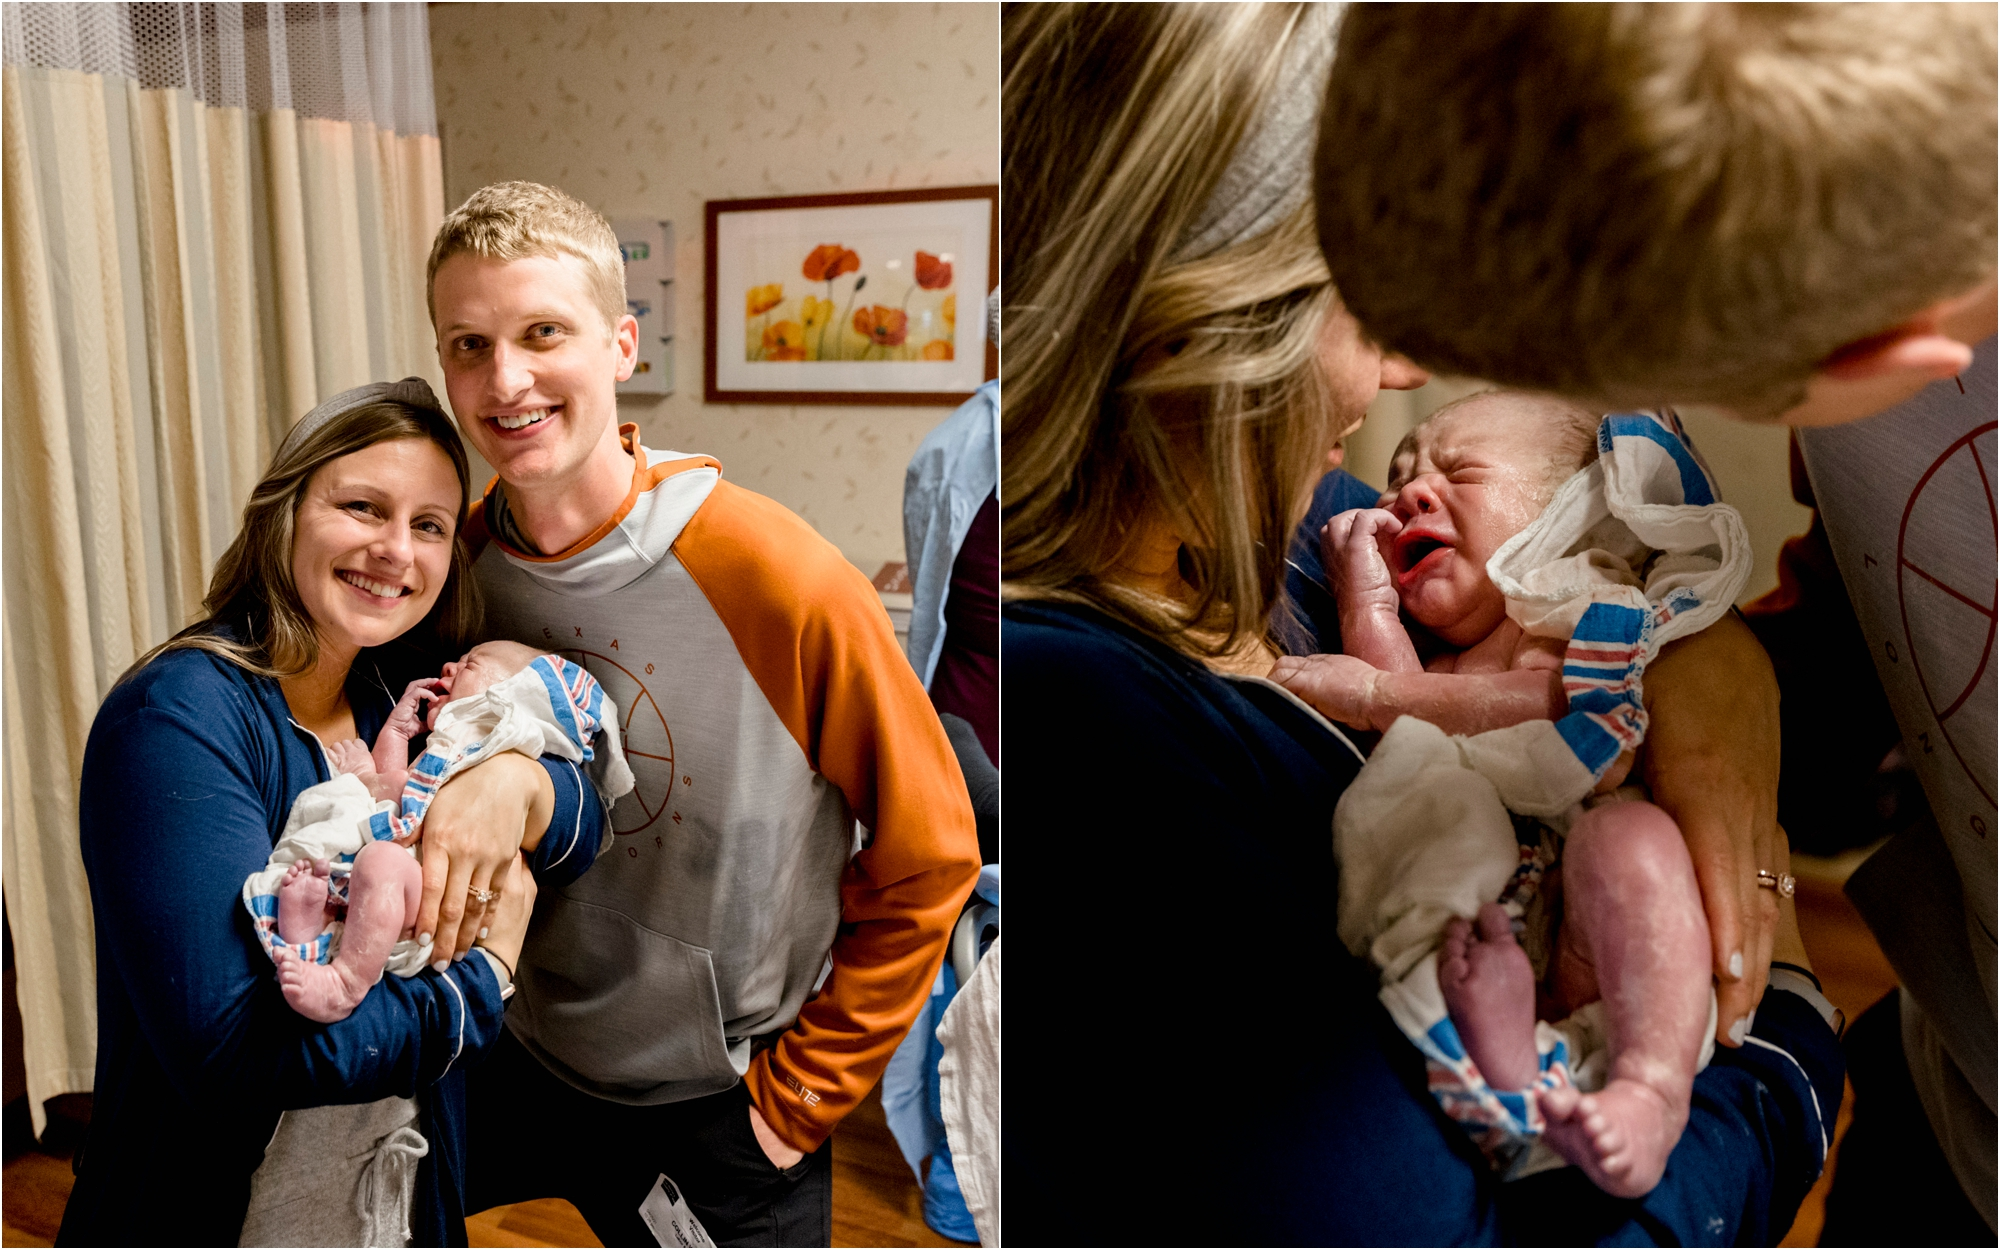 New parents holding baby after birth via surrogate at Women's Hospital of Texas in Houston. Photo by Lifetime of Clicks Photography.